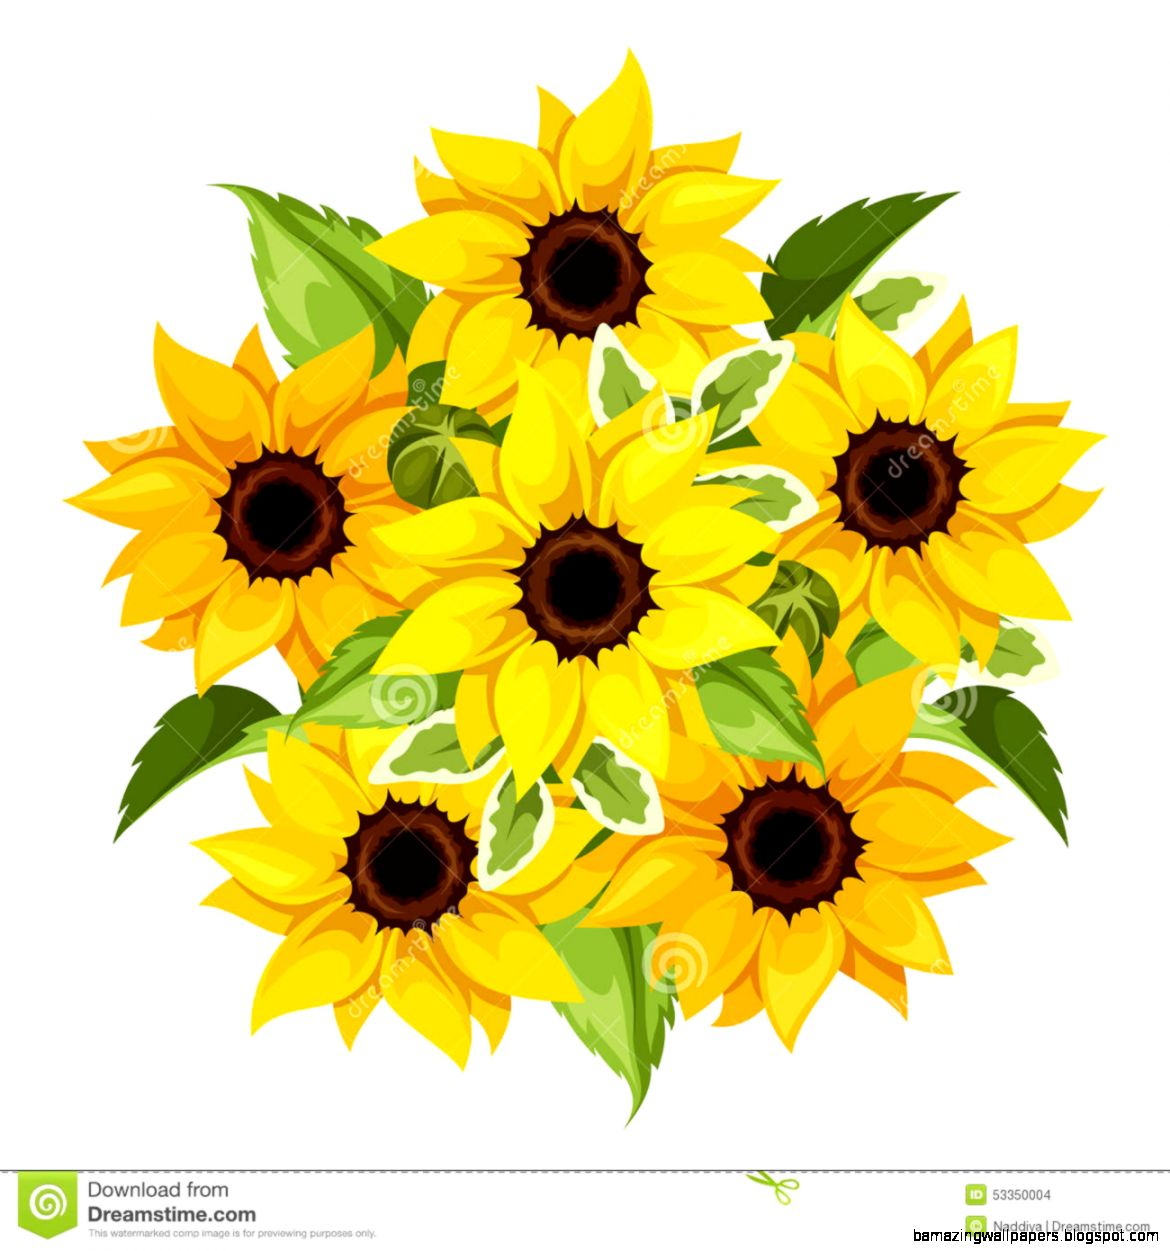 1170x1251 Sunflower Vector Illustration Amazing Wallpapers